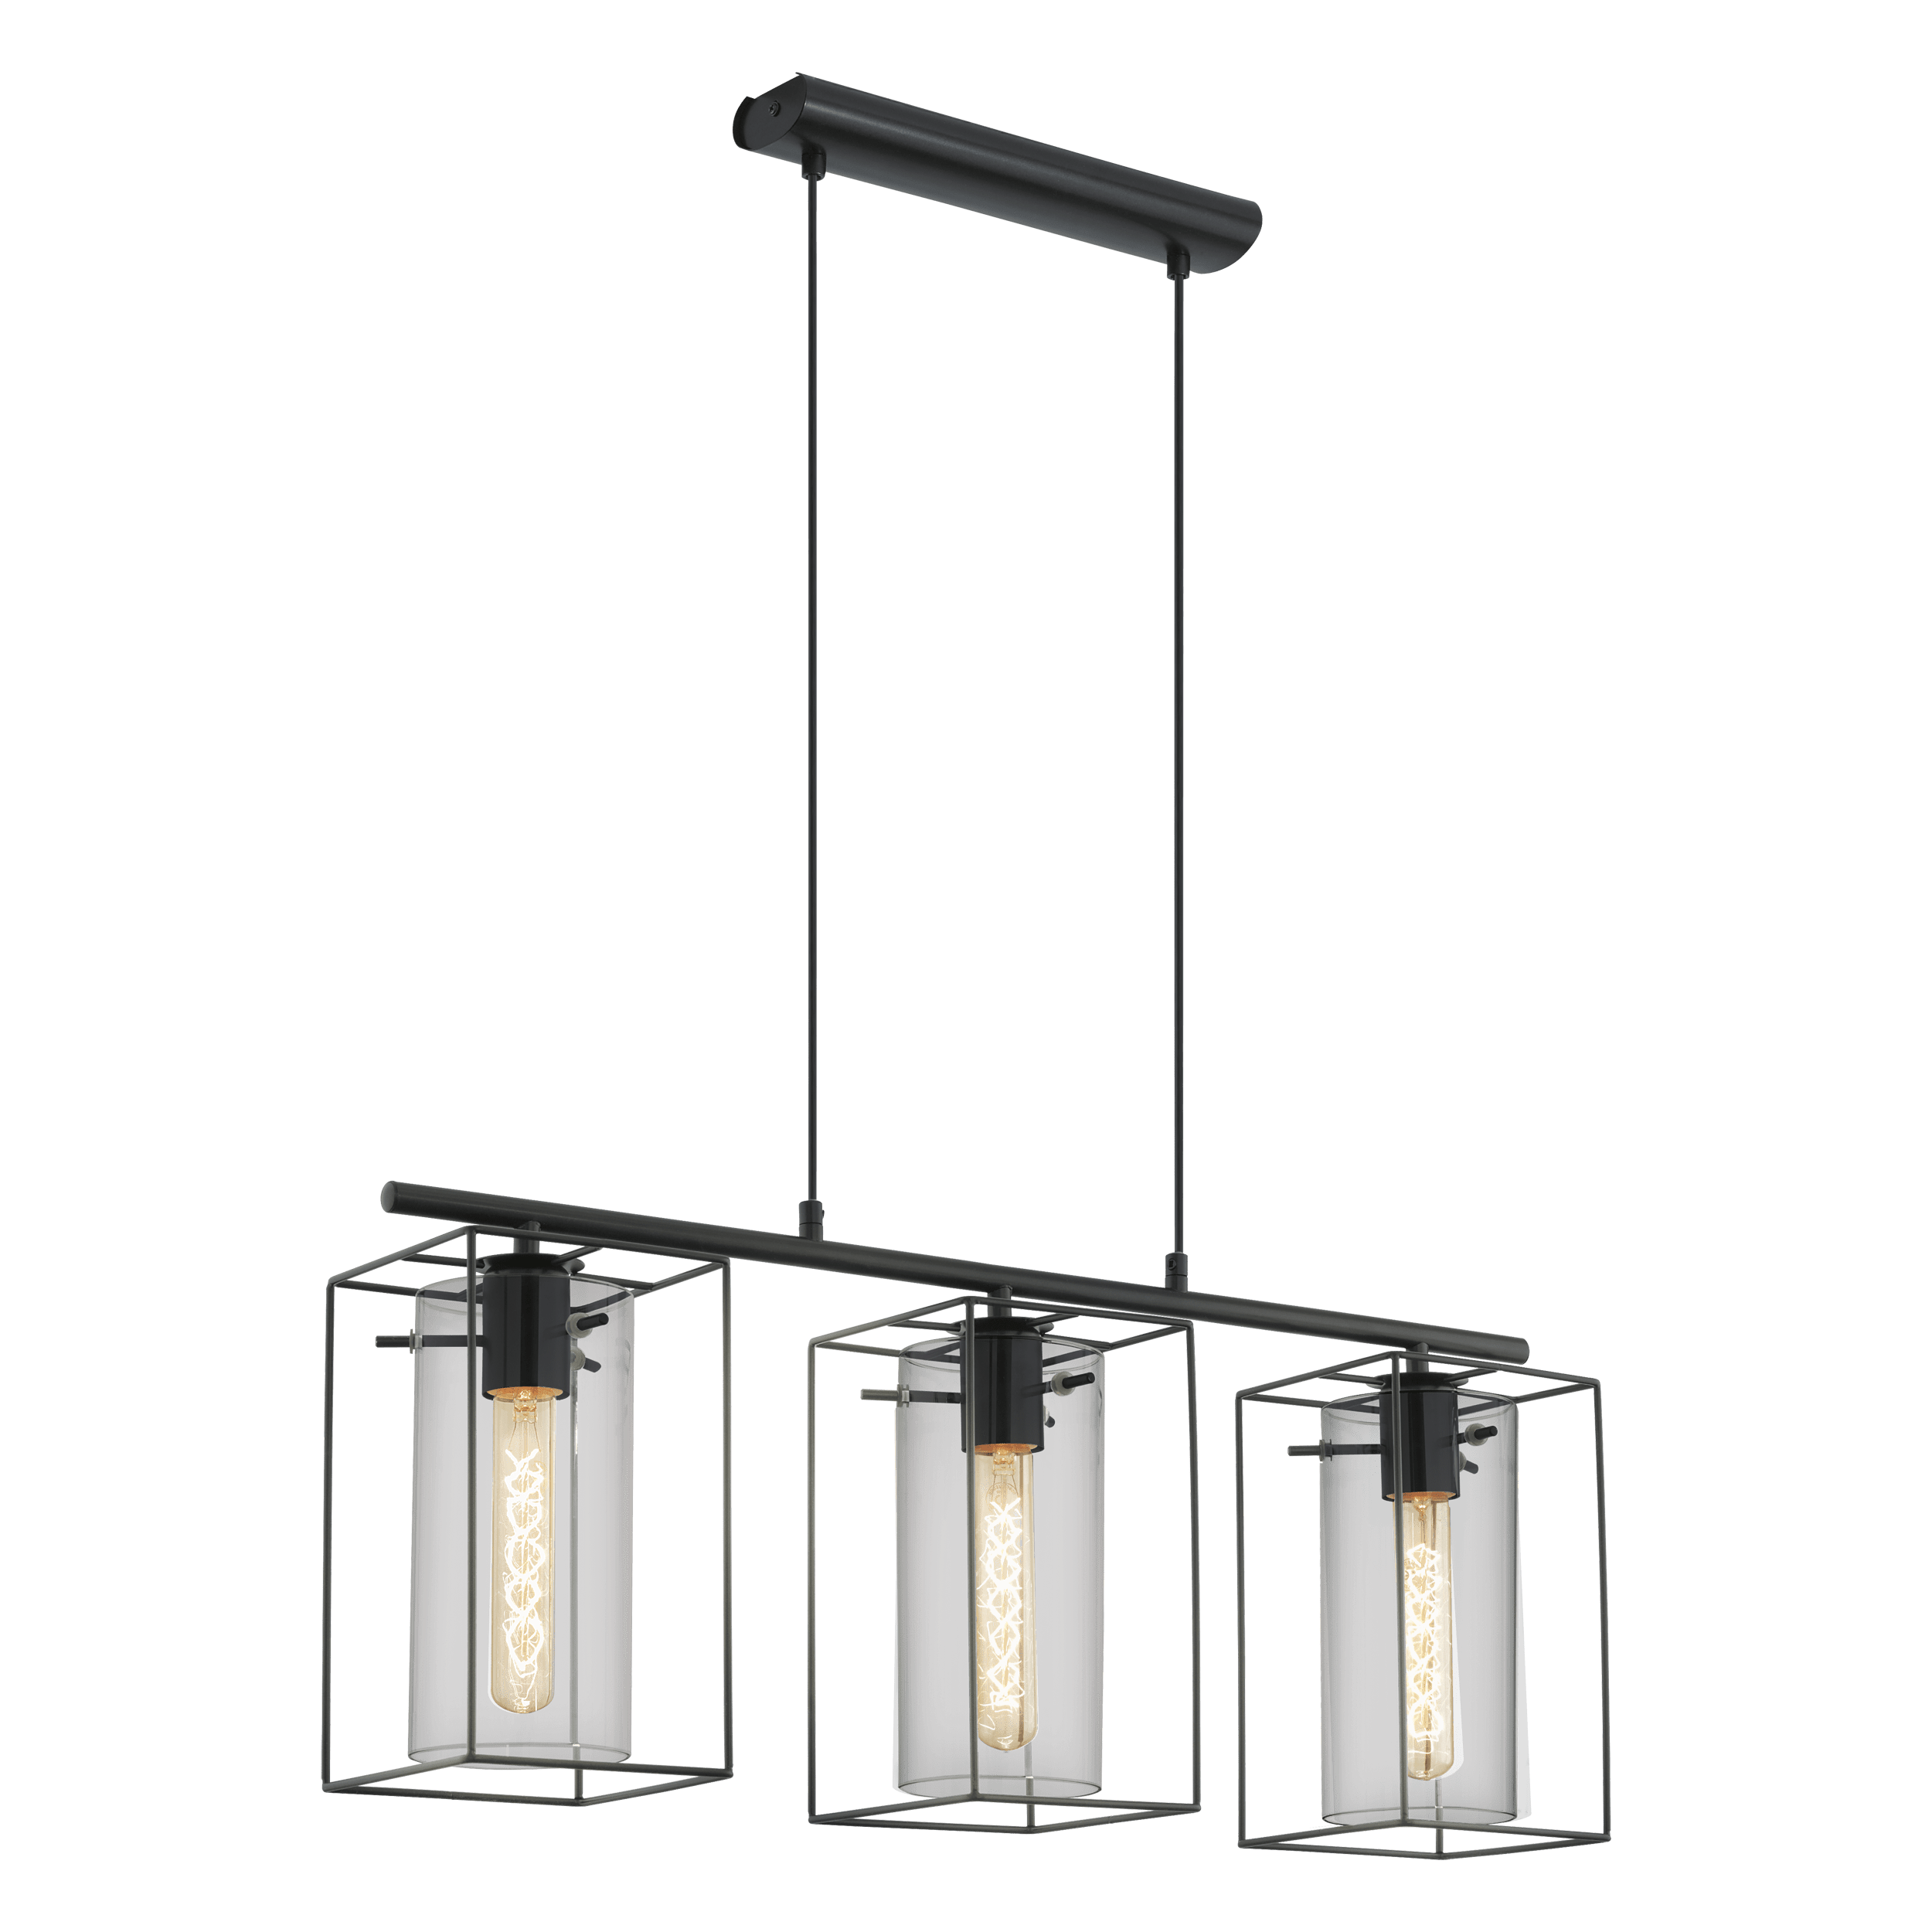 Lustre Moderne Transparent 49496 Loncino Interior Lighting Main Collections